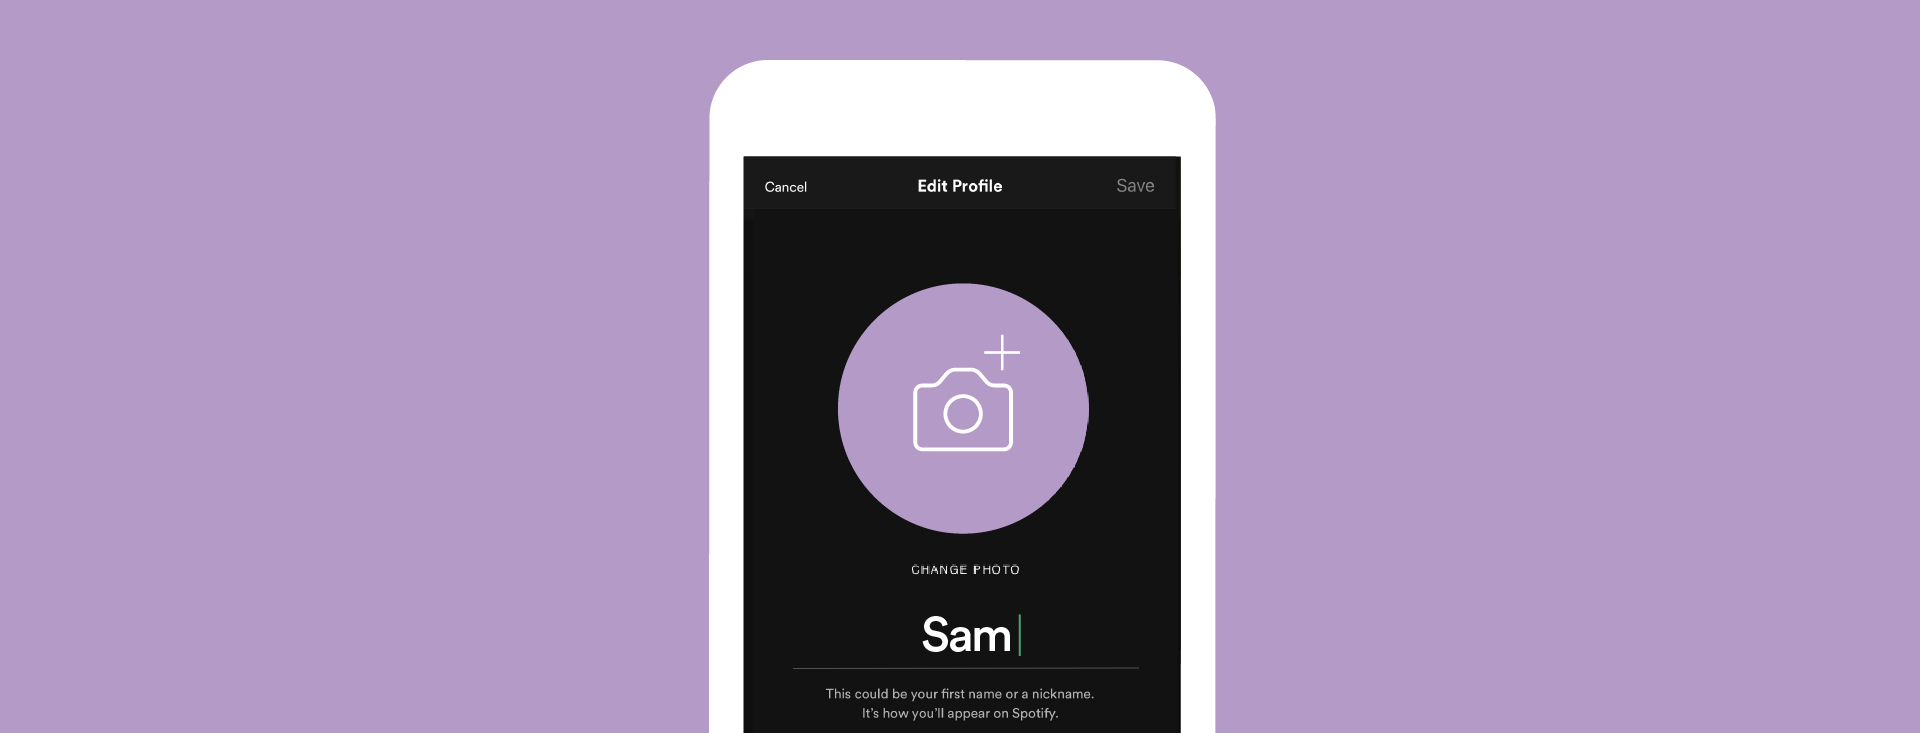 How to Customize and Share Your Spotify Profile — Spotify